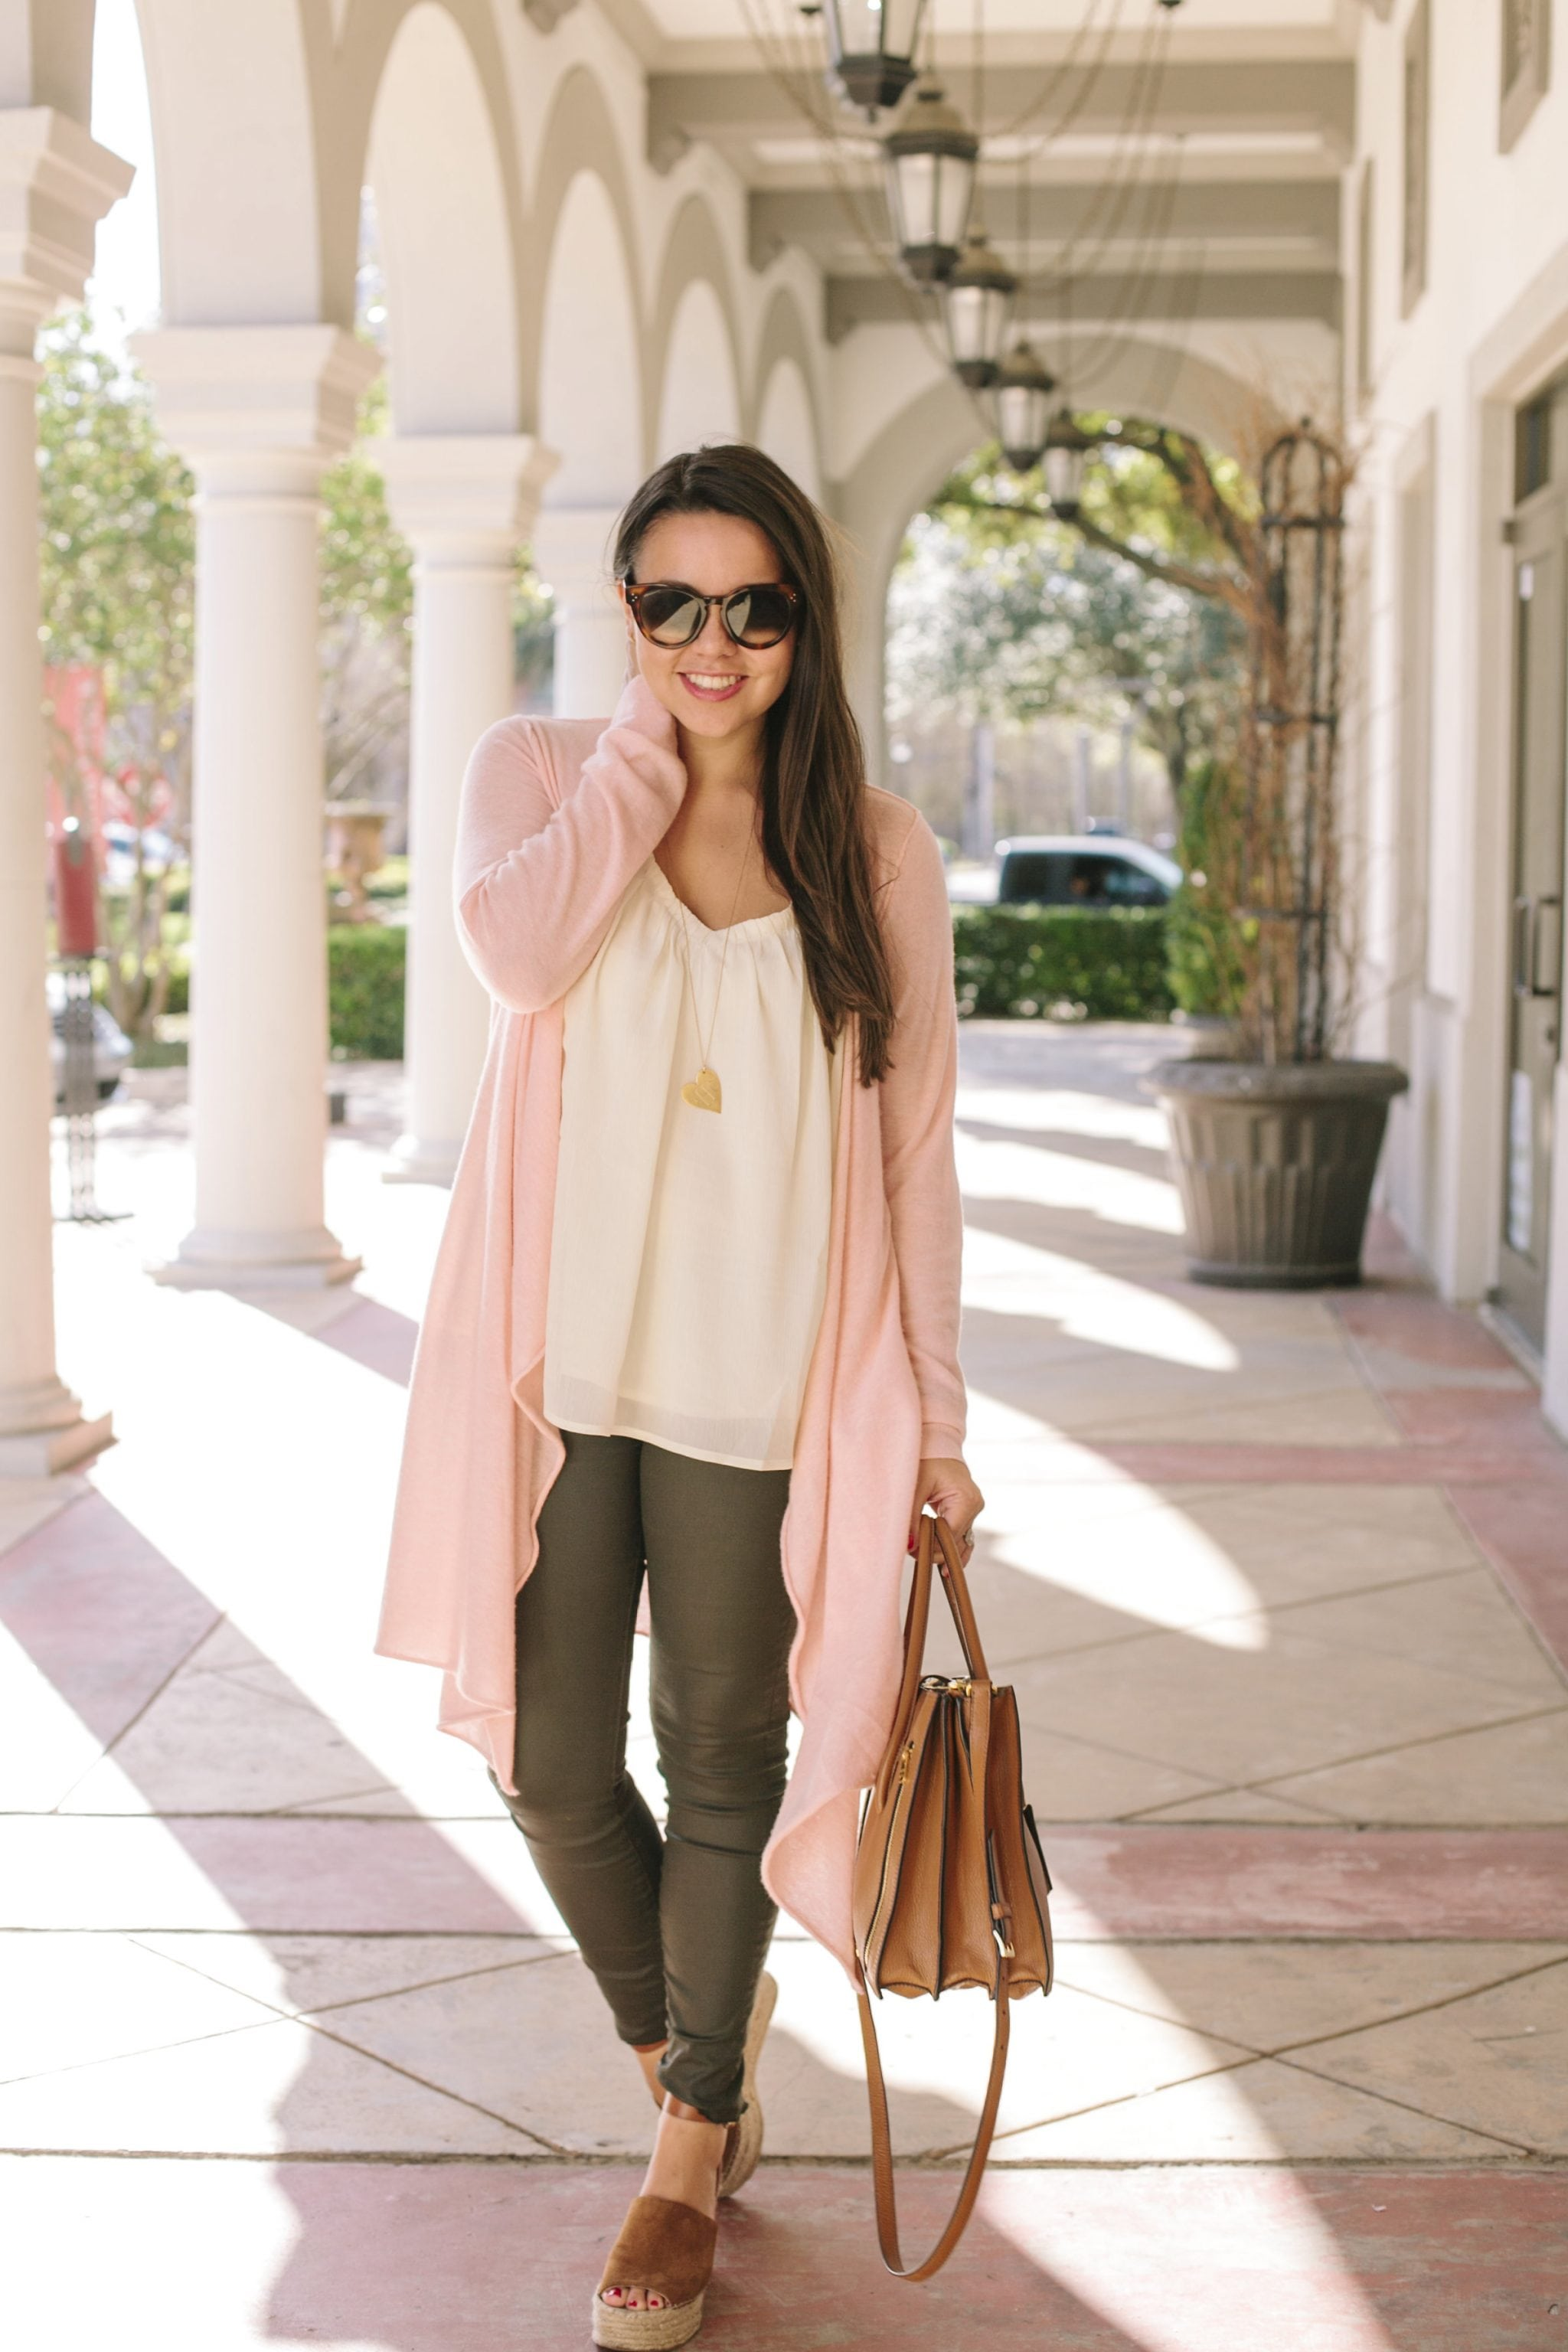 Cashmere duster sweater for spring